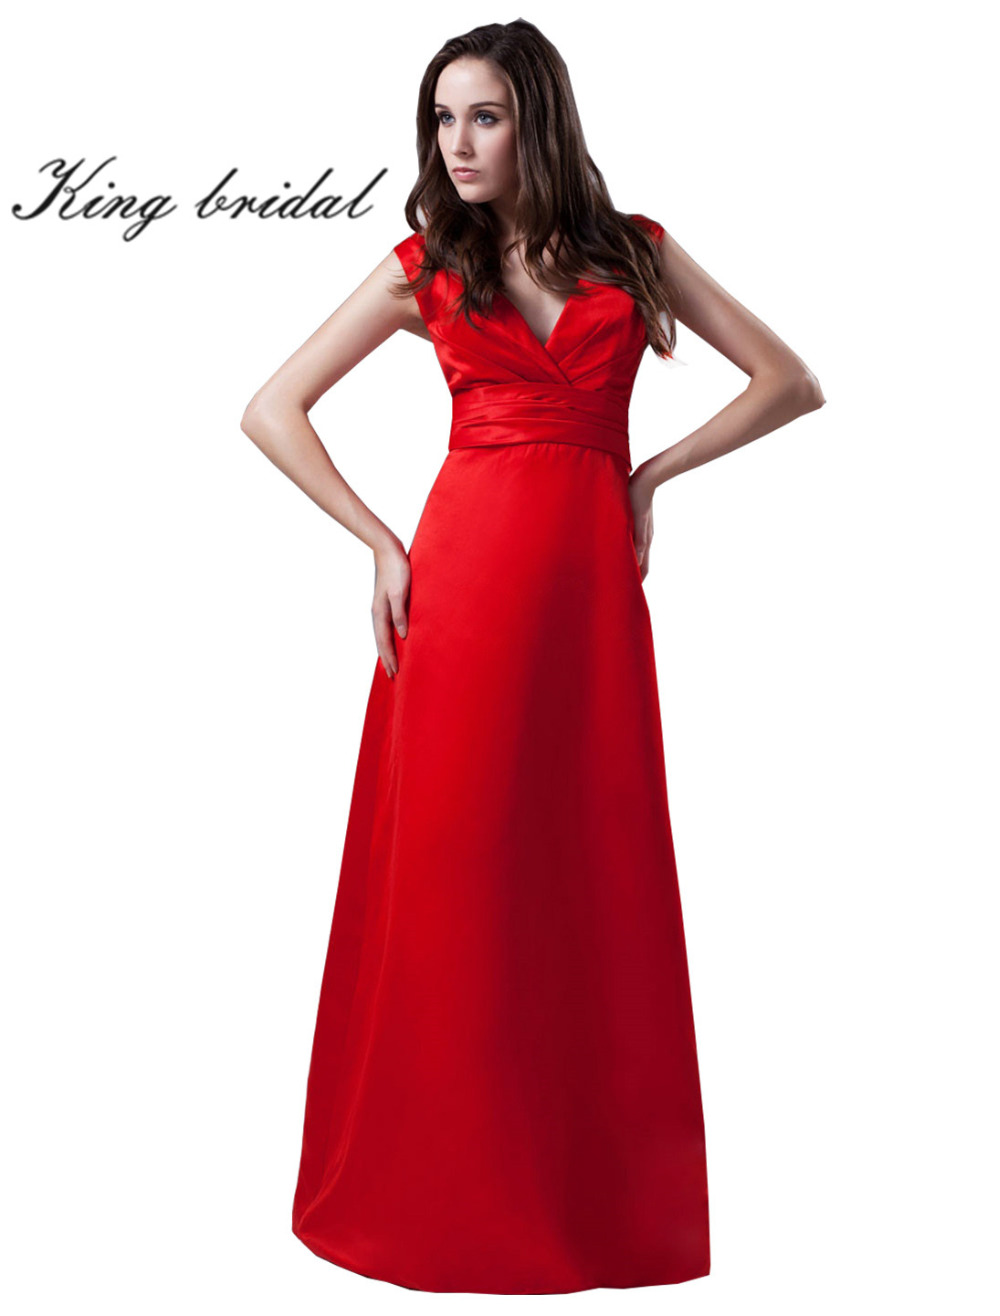 2017 Elegant Floor Length Evening Dresses Sexy Red V Neck Empire A Line Prom Party Gowns Long Cheap Formal Dress New Arrival(China (Mainland))